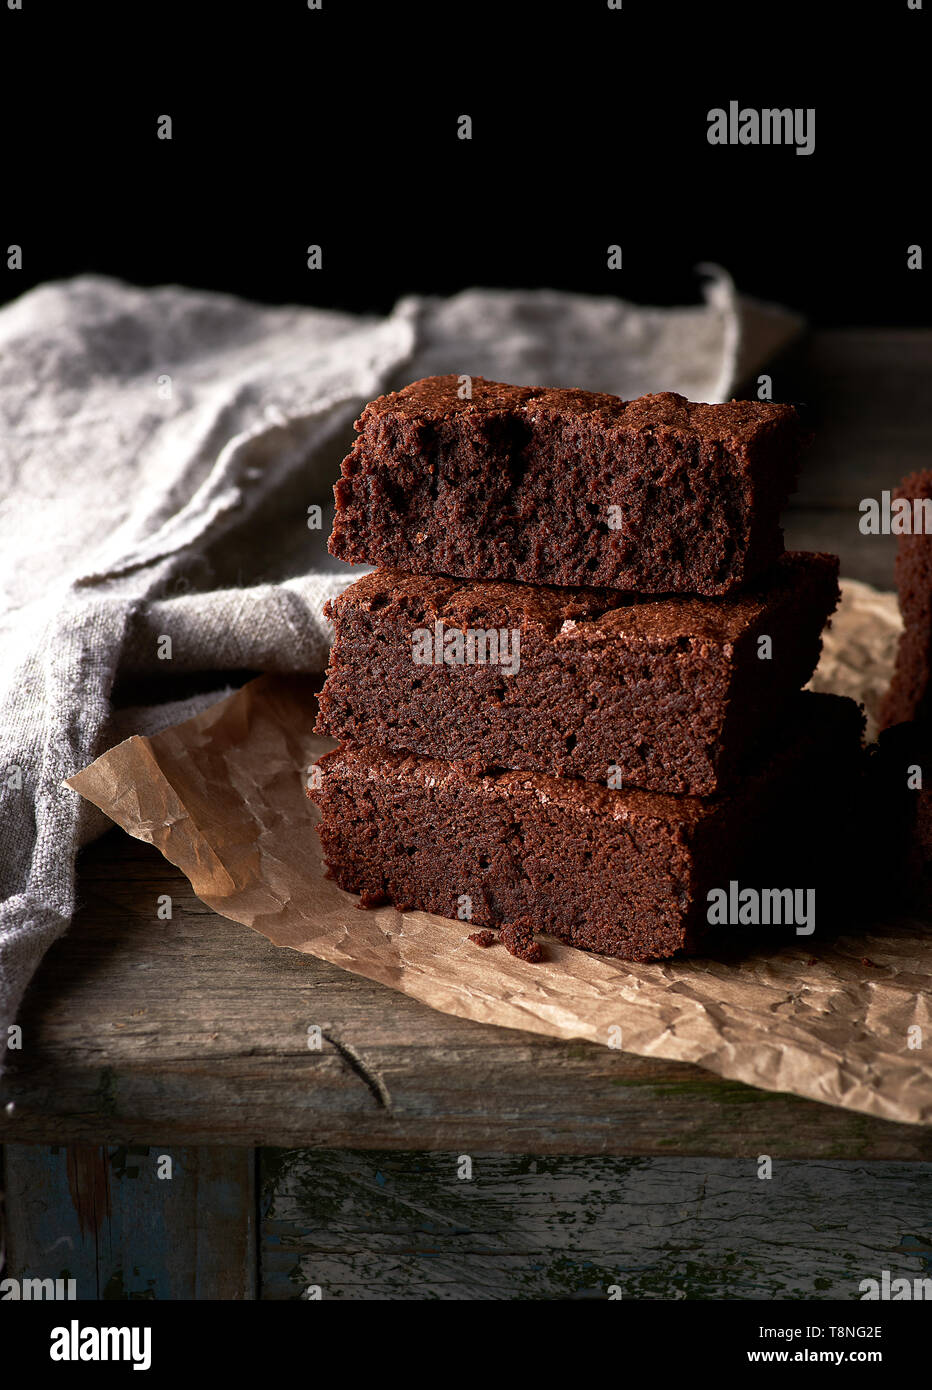 A stack of baked square pieces of chocolate brownie cake on brown parchment paper, black background - Stock Image